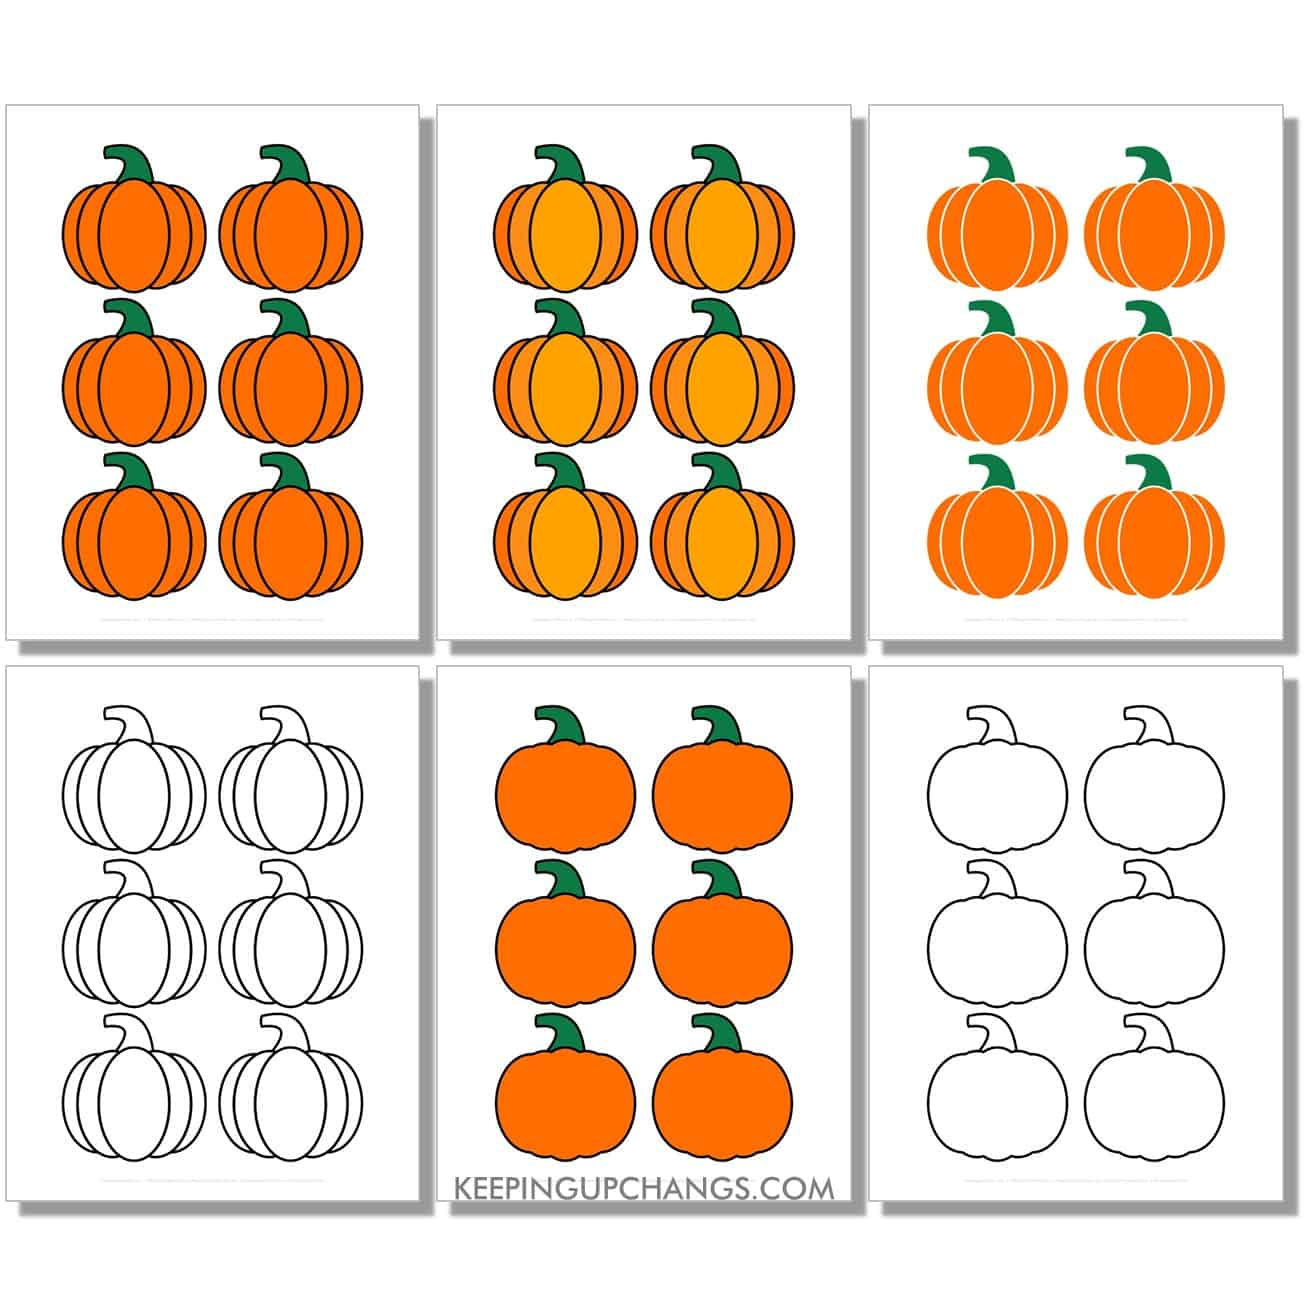 free mini classic pumpkin in color, black and white, silhouette, 6 to a page.